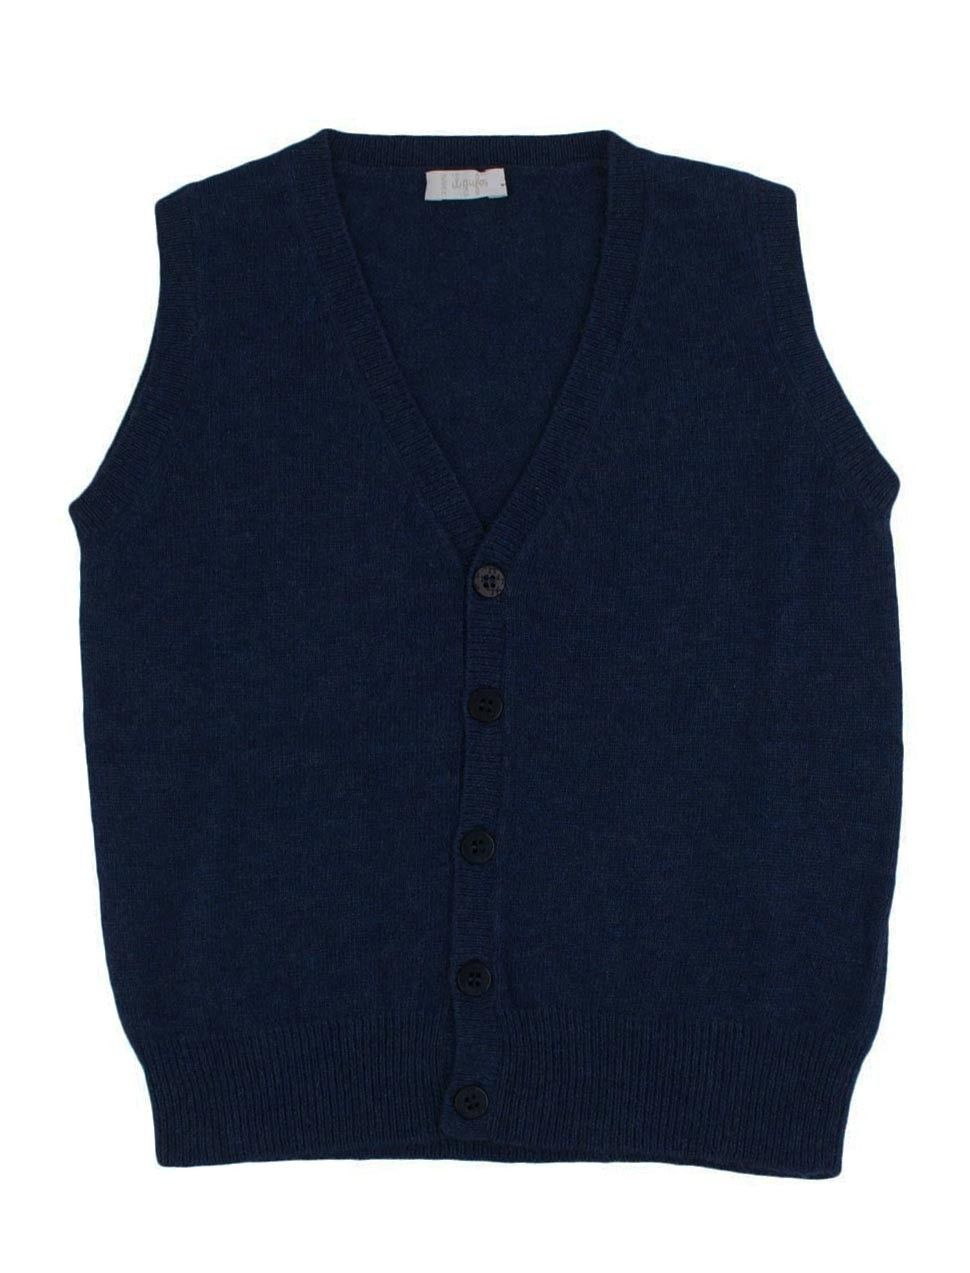 e9b151449 Navy blue boys slipover cardigan from Il Gufo